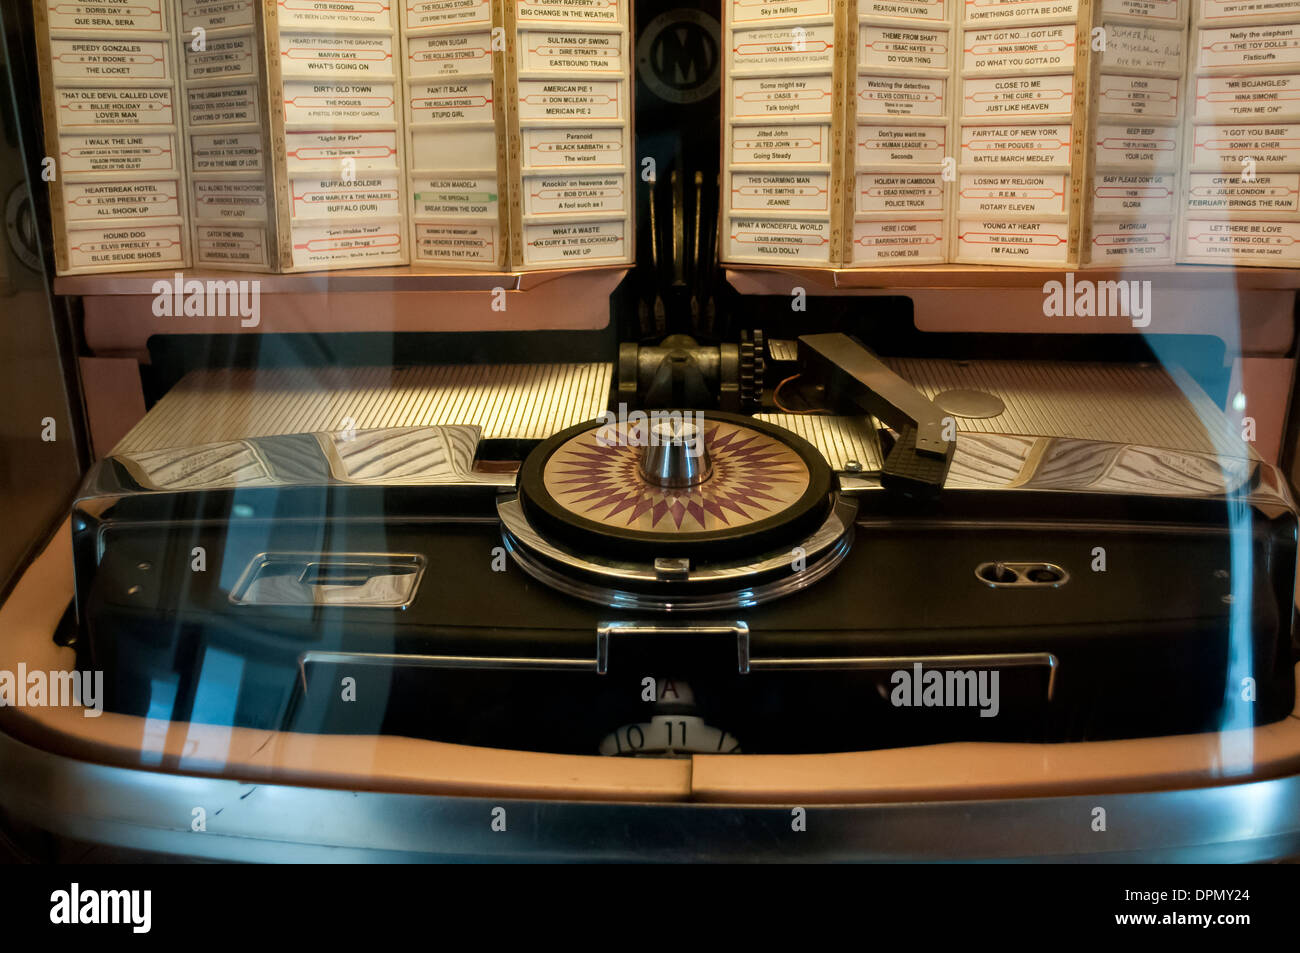 Vintage Jukebox Stock Photos & Vintage Jukebox Stock Images